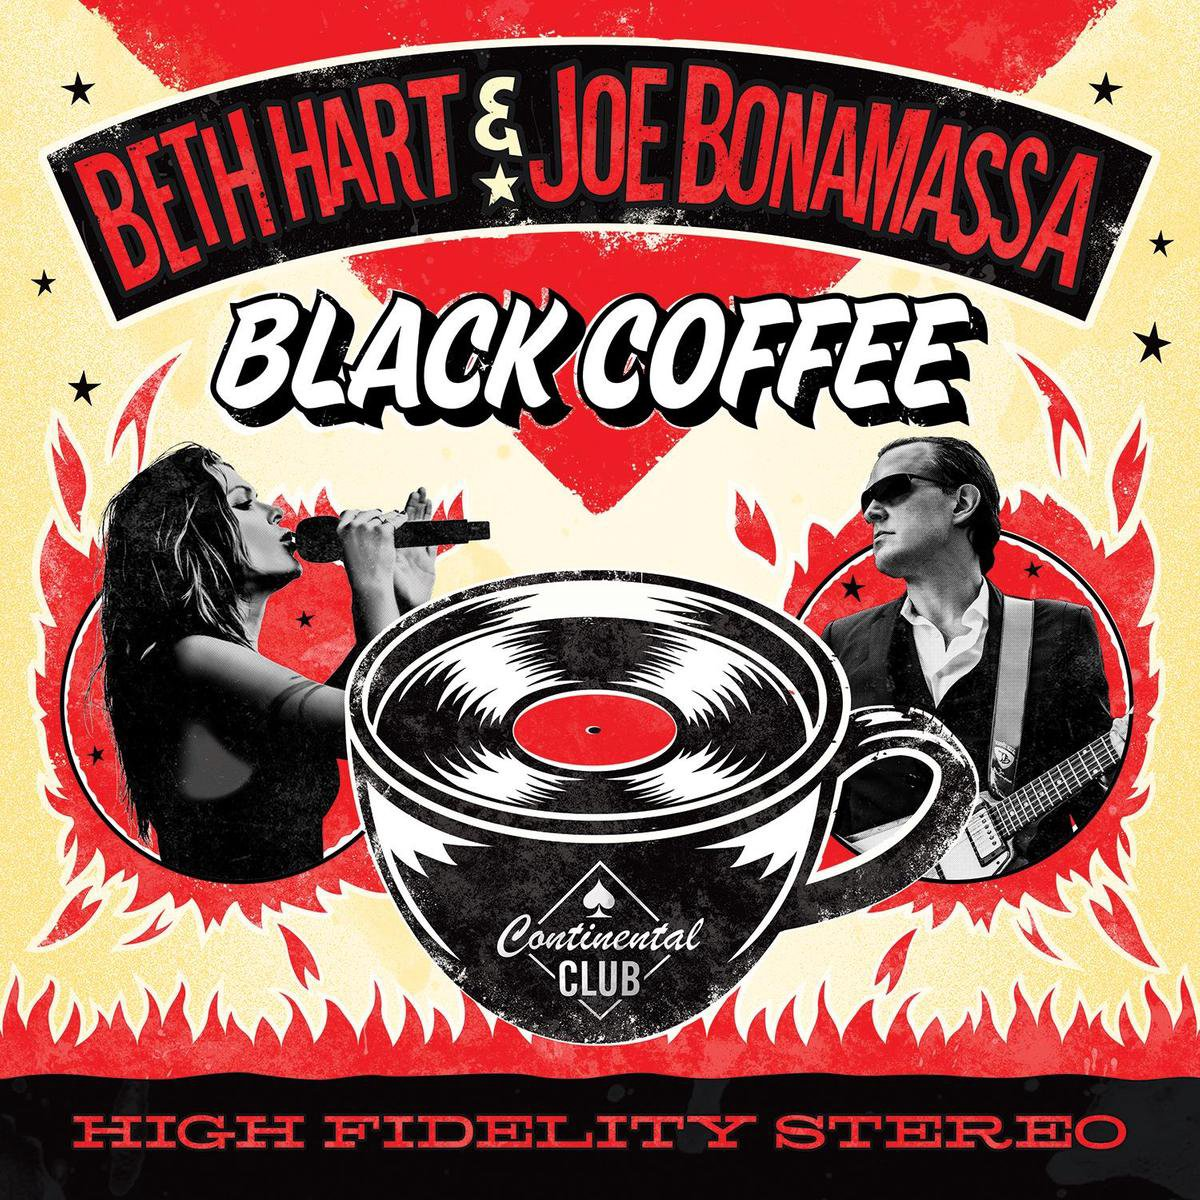 Black Coffee - Beth & Joe Bonamassa Hart